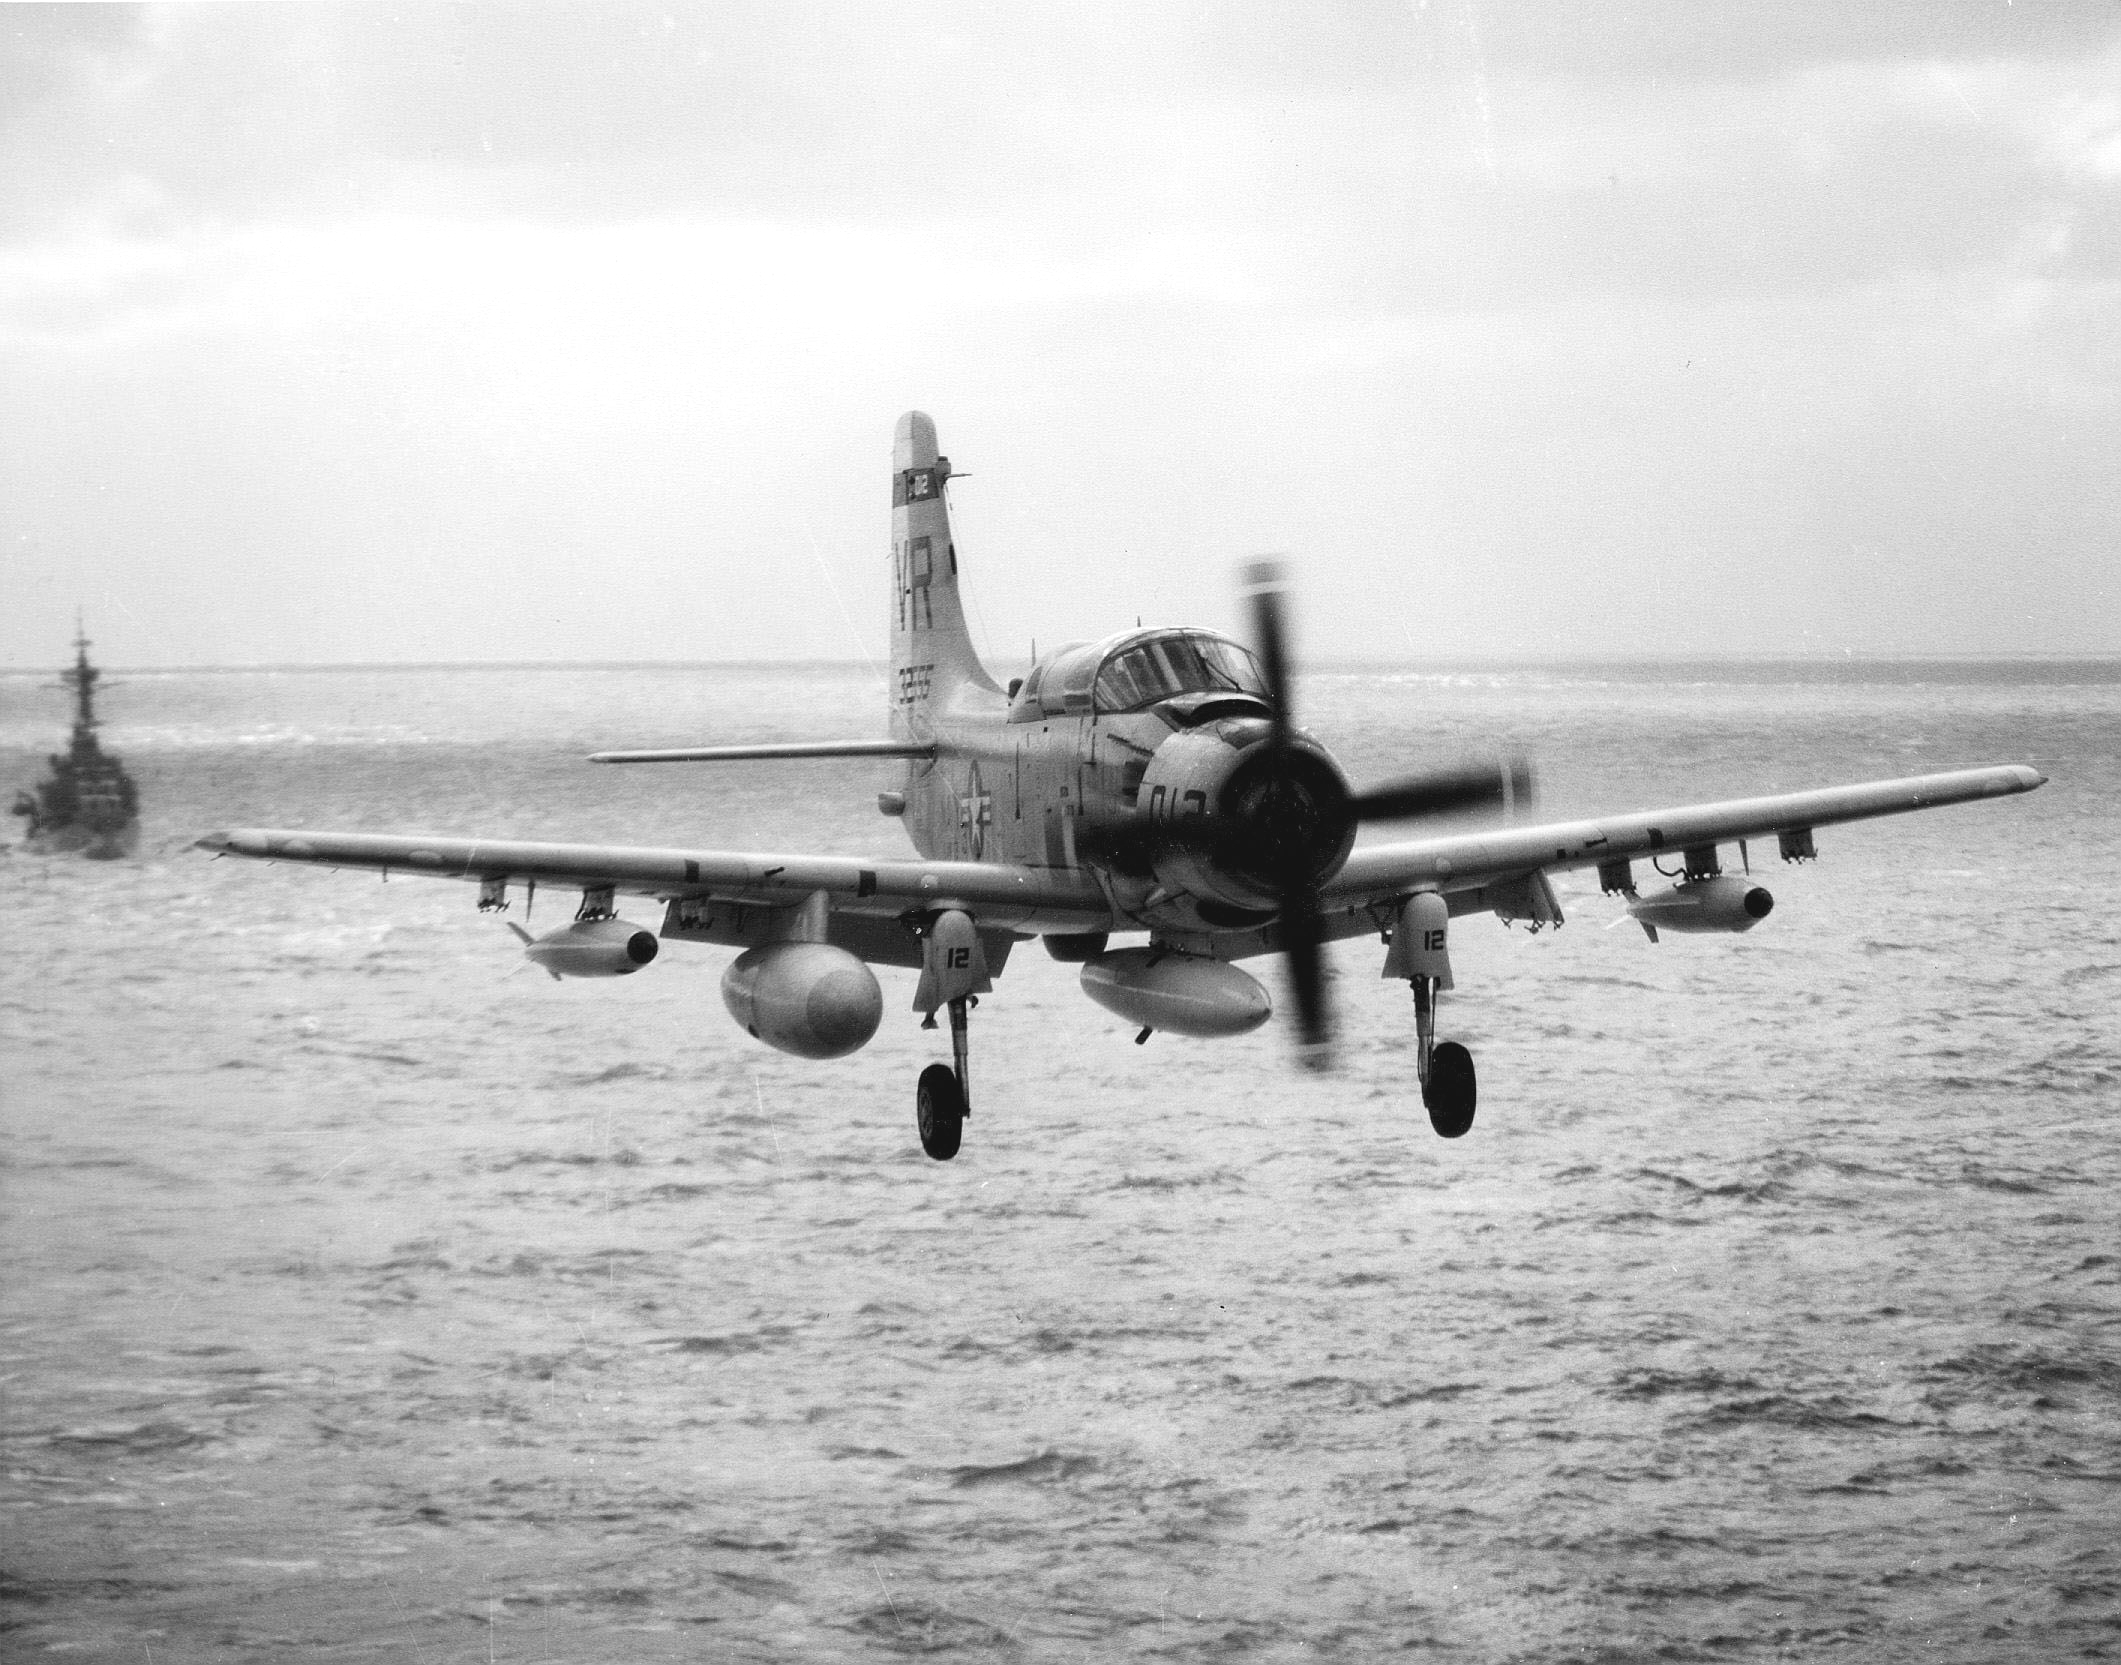 File:EA-1F Skyraider of VAW-13 Det.63 of approaches USS